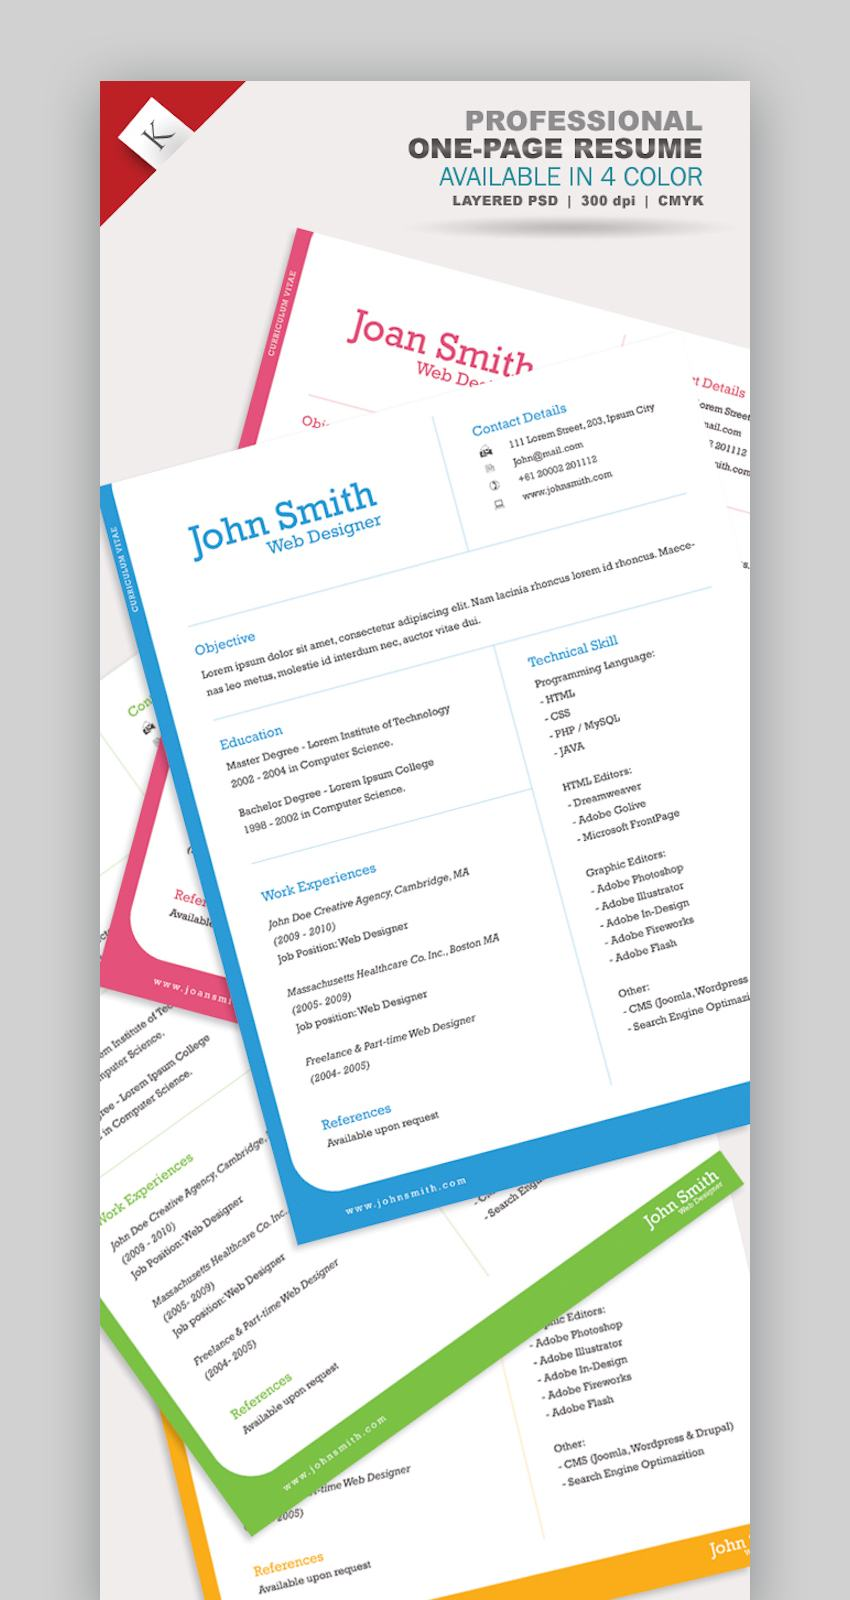 Professional One-Page Resume Template